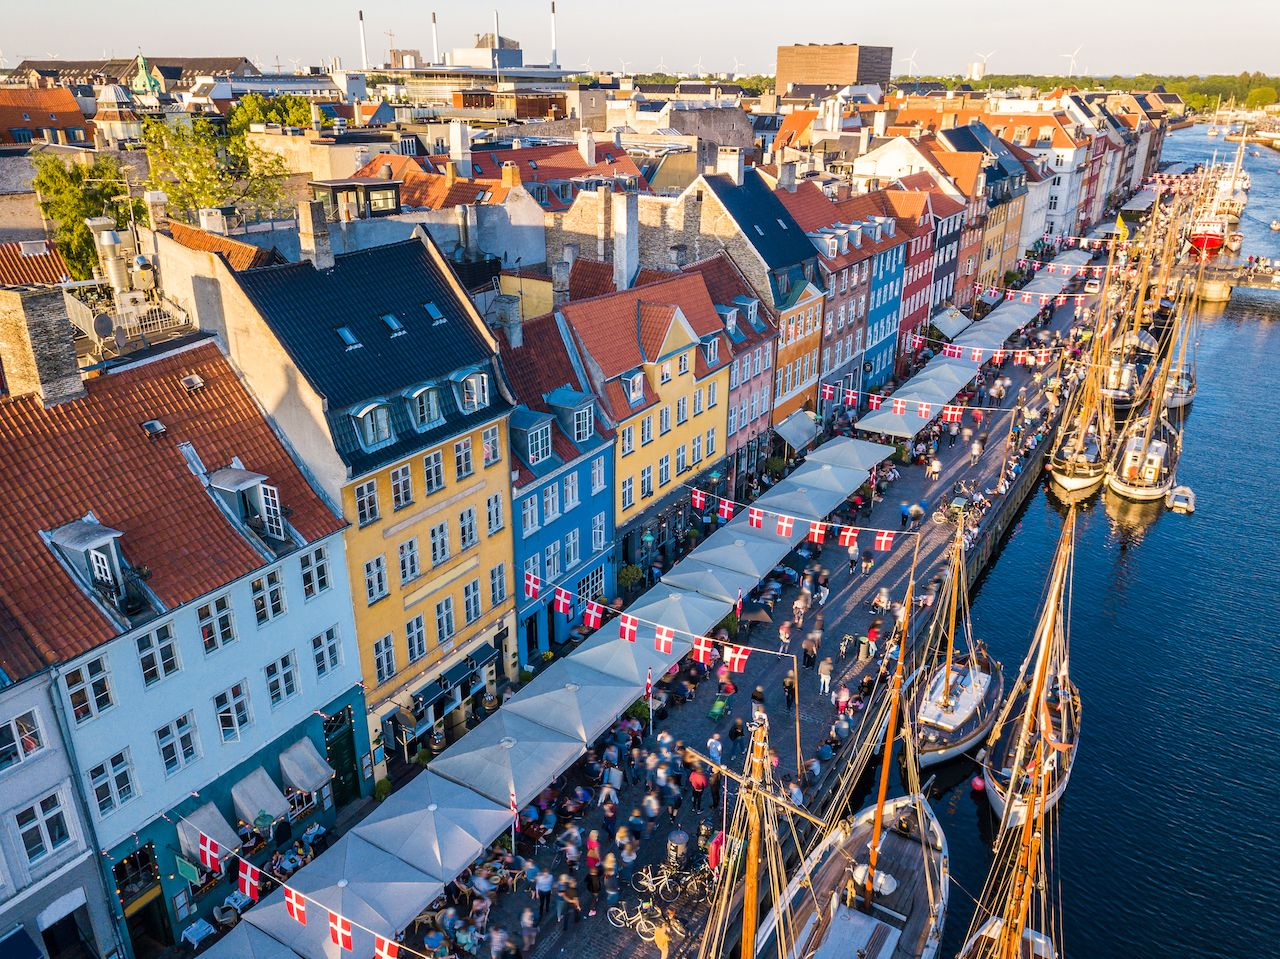 Nyhavn New Harbour canal and entertainment district in Copenhagen, Denmark